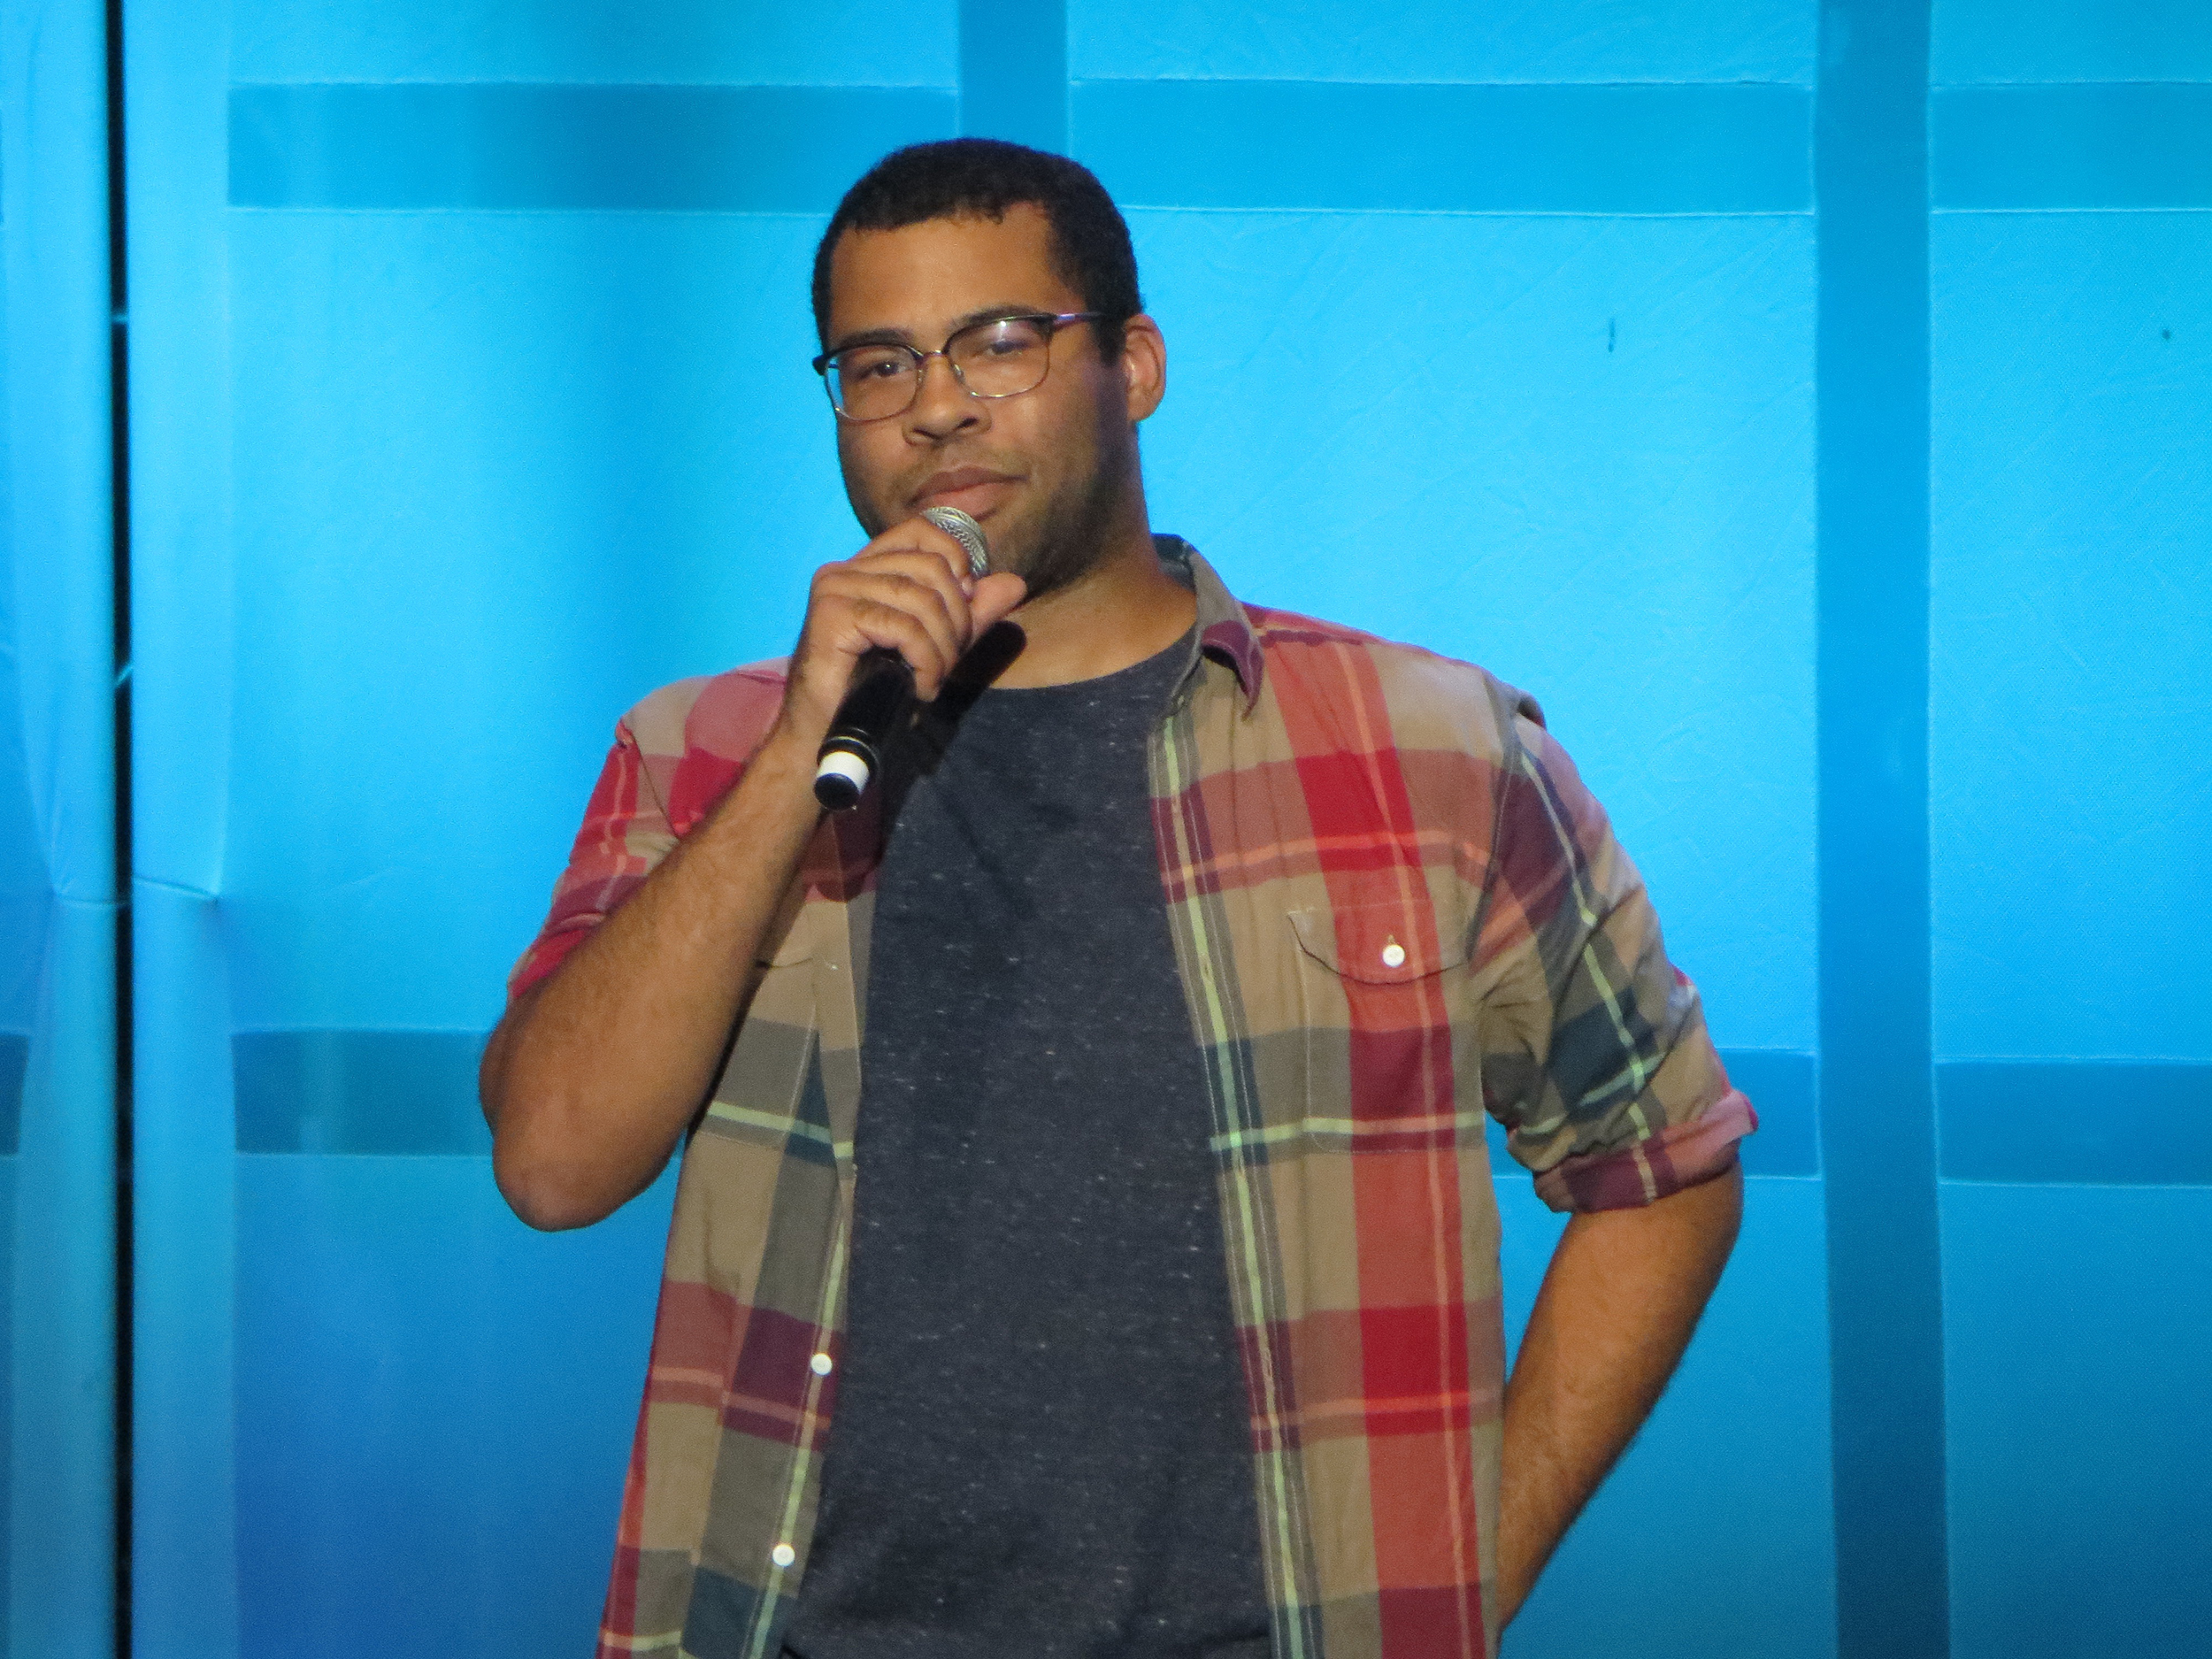 Jordan Peele performs live in concert at Shoreline Comedy Jam in 2012. Peele had wild success with his first film Get Out and is trying for a second box-office hit with Us (courtesy of Creative Commons).